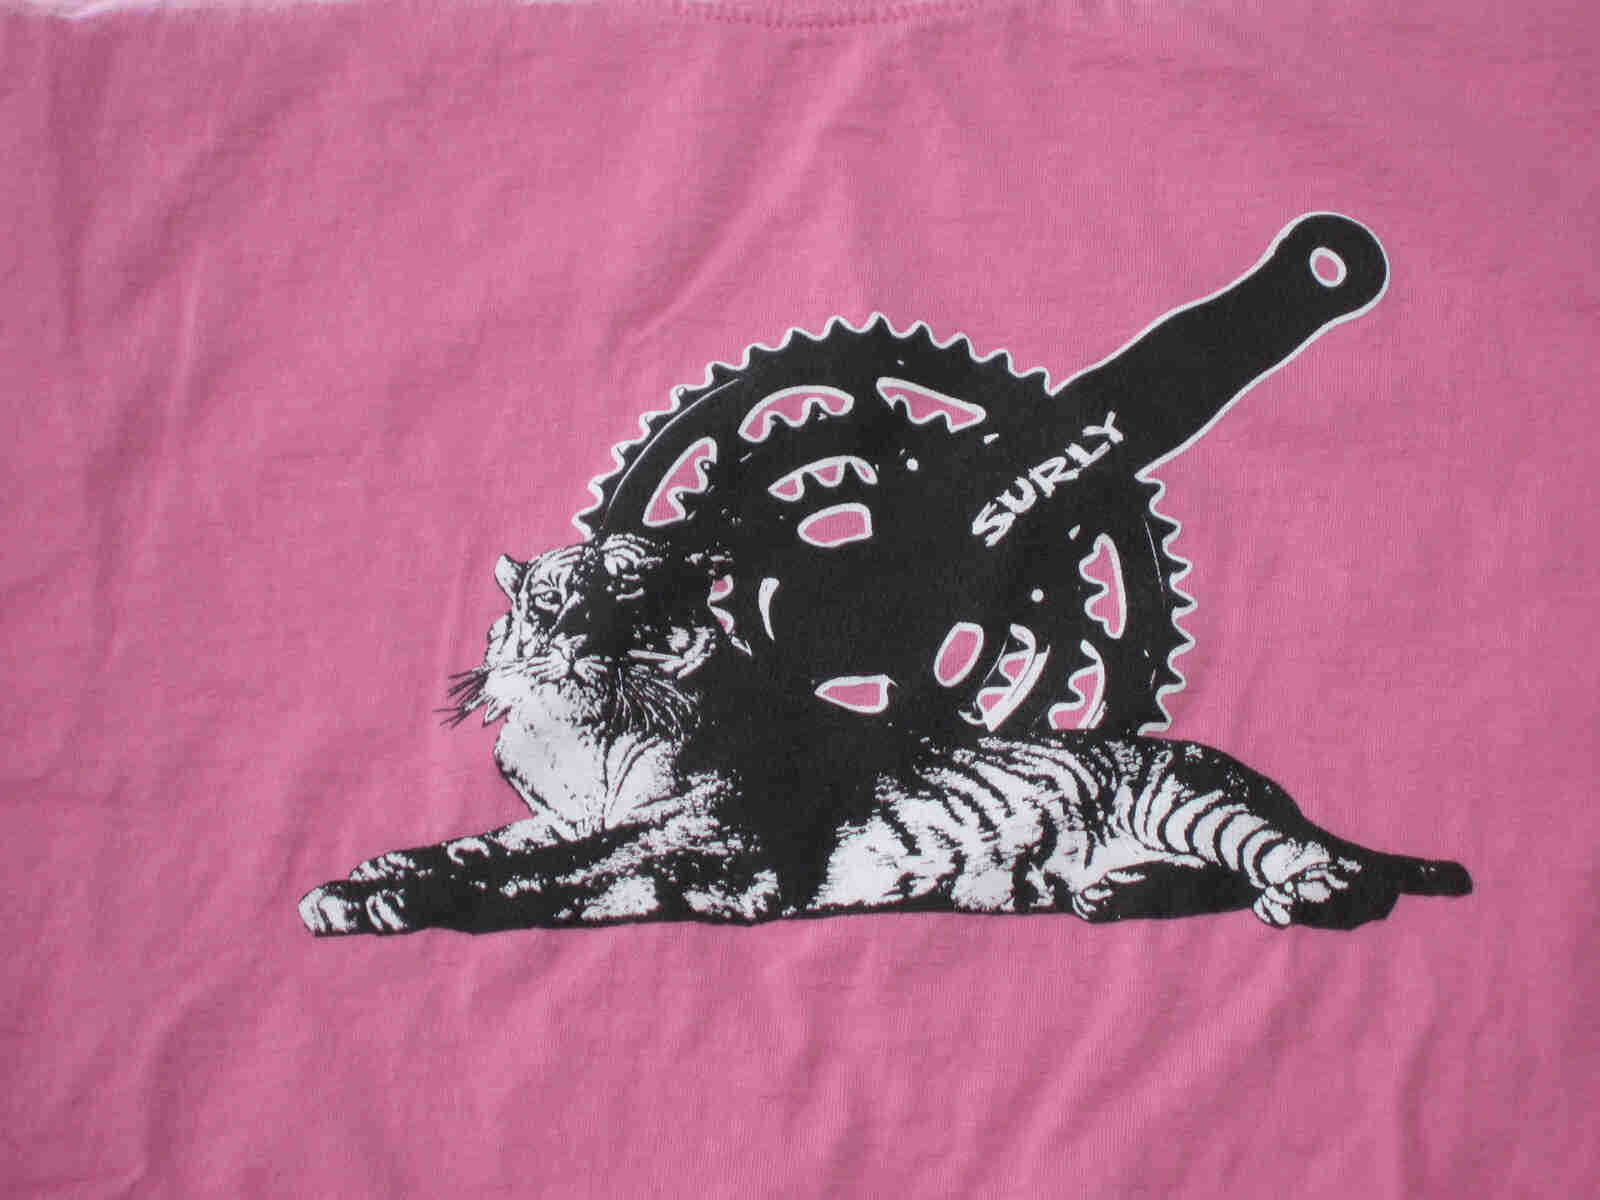 Front, chest area view of a pink Surly Bikes t-shirt with a graphic of a bike crank and a tiger